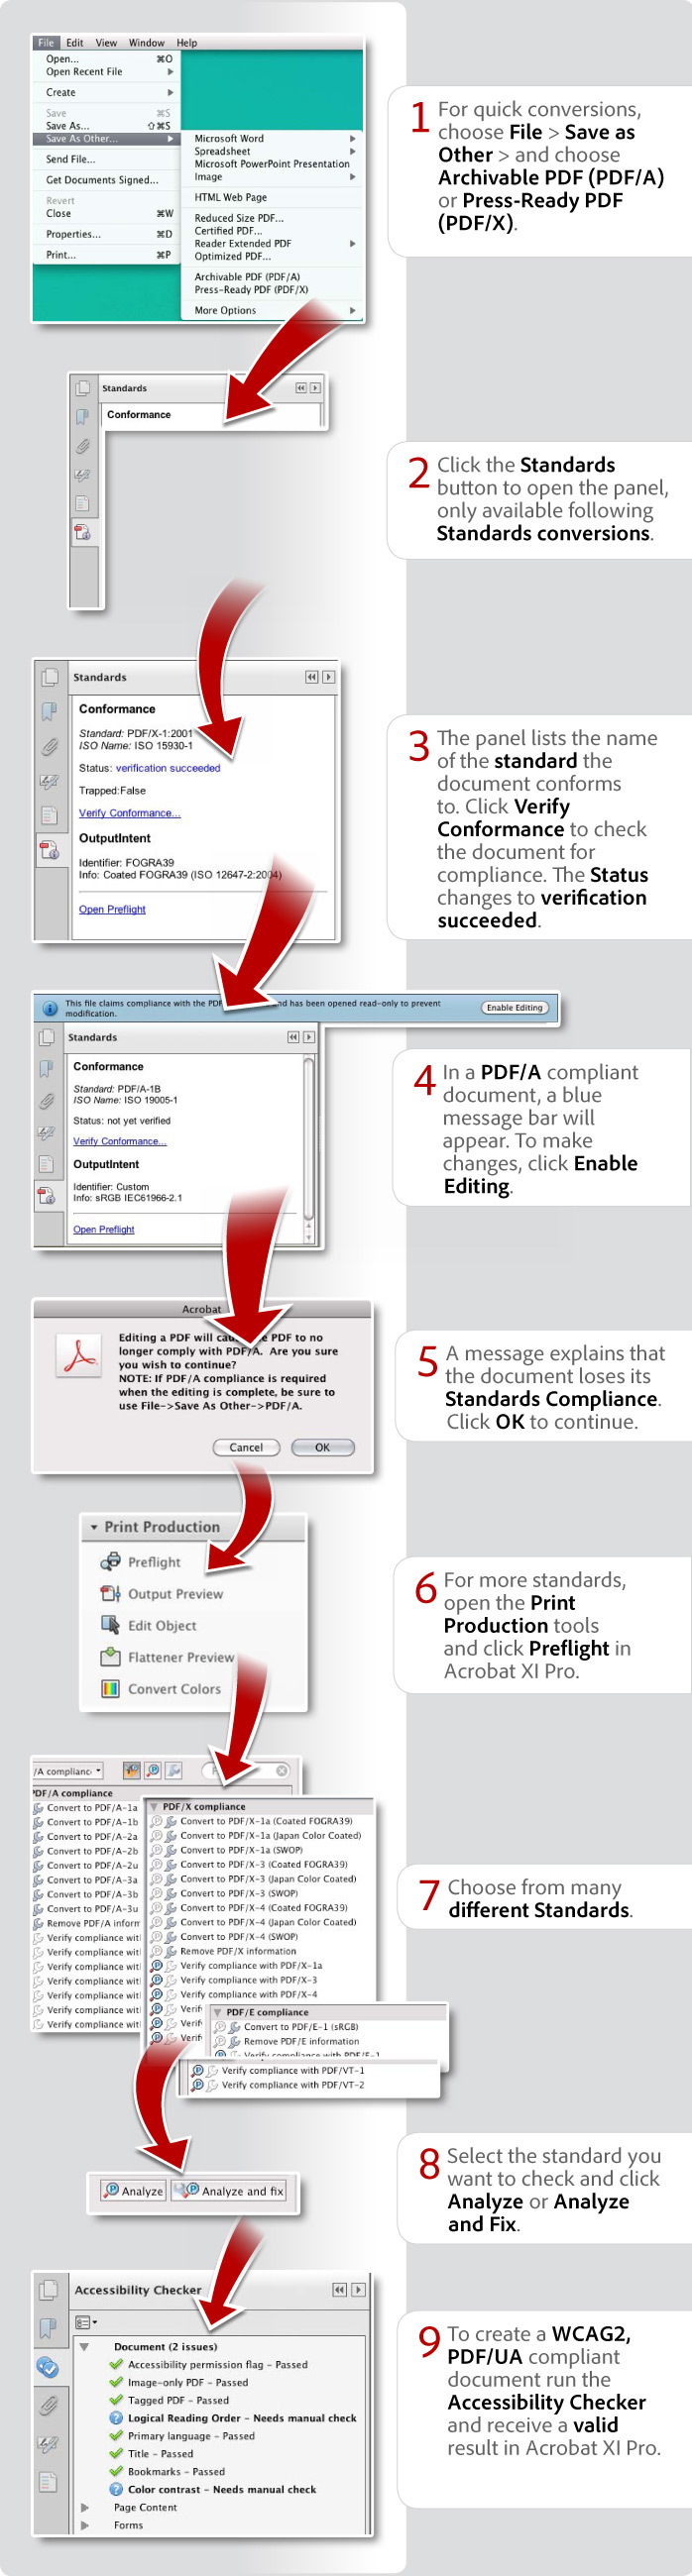 How to conform to PDF standards using Acrobat XI